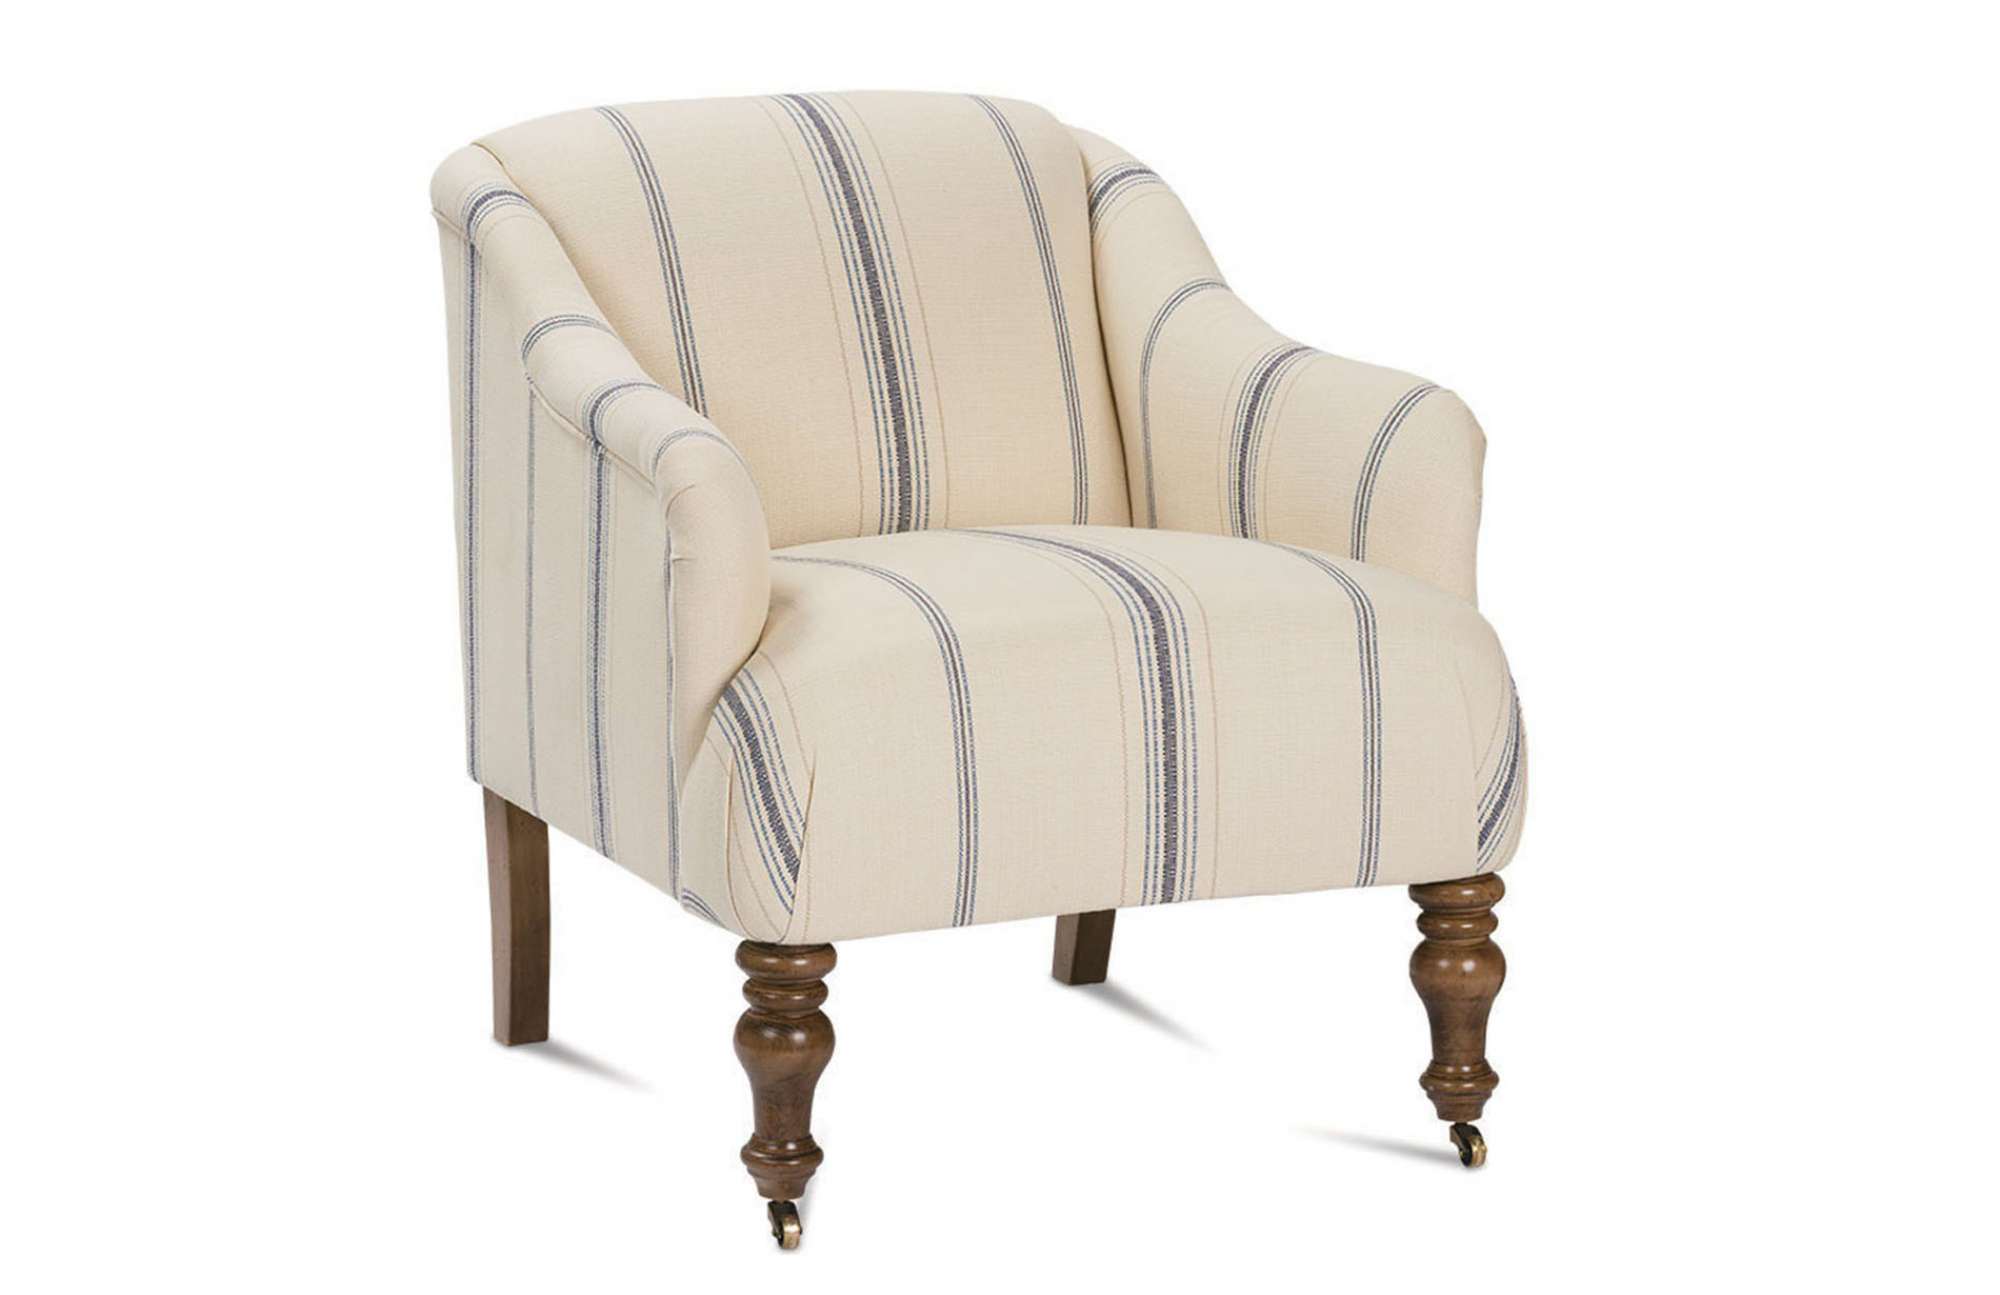 Finally, I Think We Have Found The Perfect Chair. It Has A Hip, Retro,  Mid Century Feel In A More Neutral, Comfortable Design, While Not Feeling  Too Big, ...